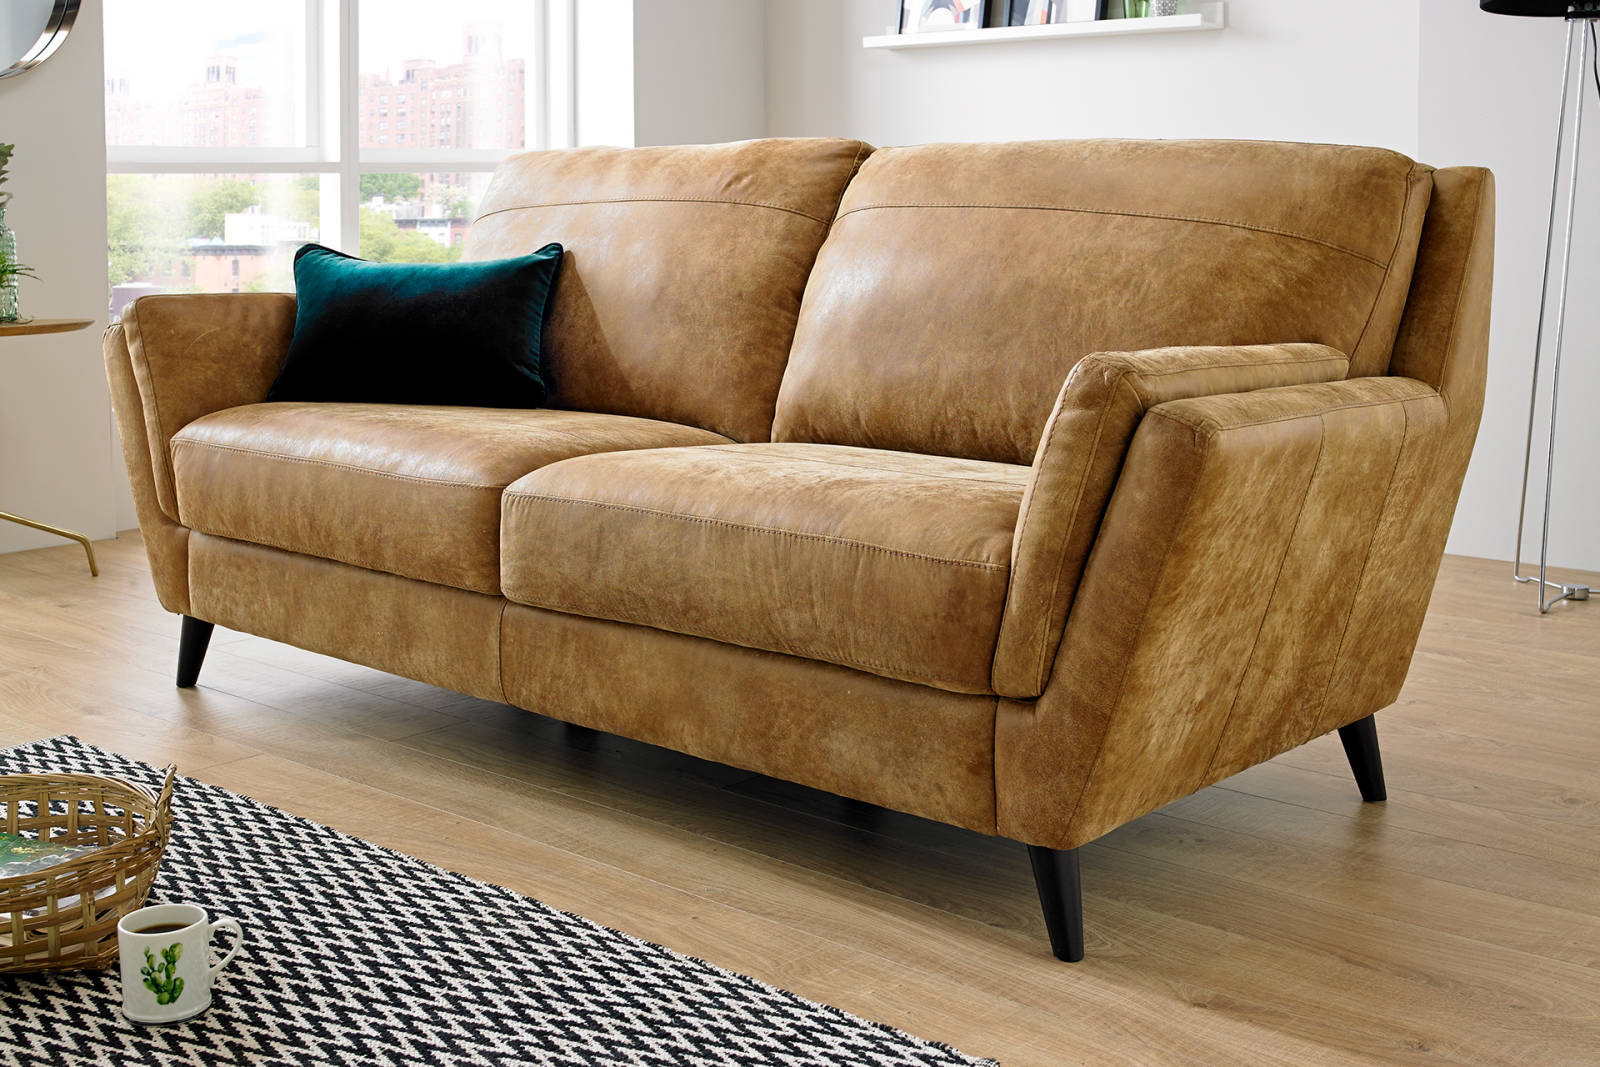 should i buy an interest free sofa and what are the latest